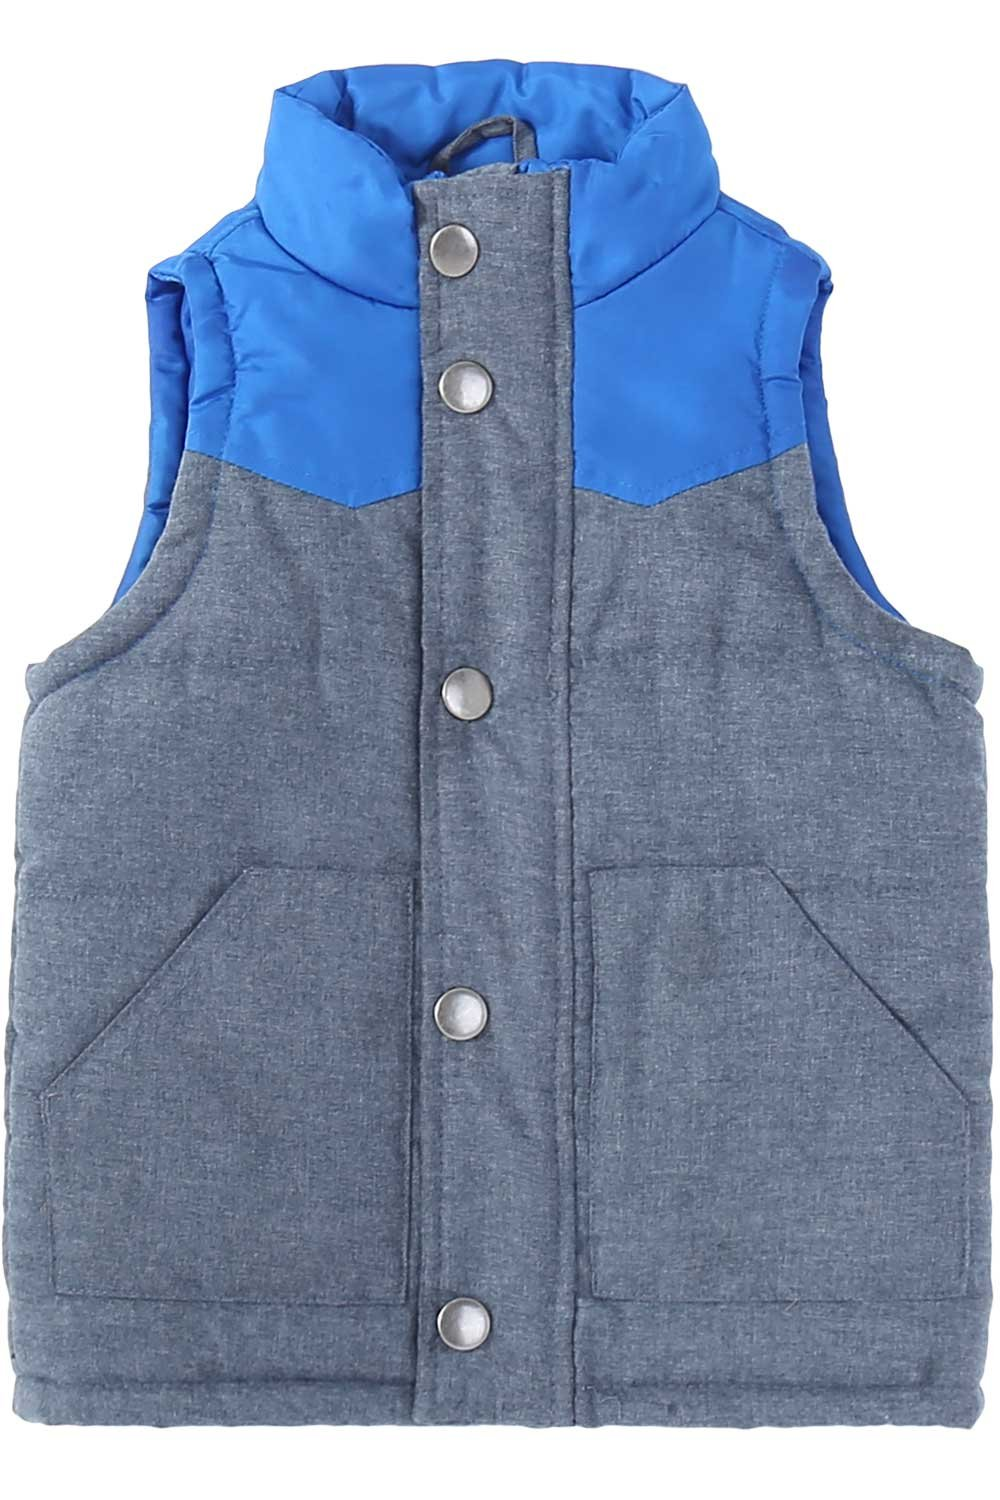 Bienzoe Infant Zip Quilted Sleeveless Warm Cotton-Padded Gilets